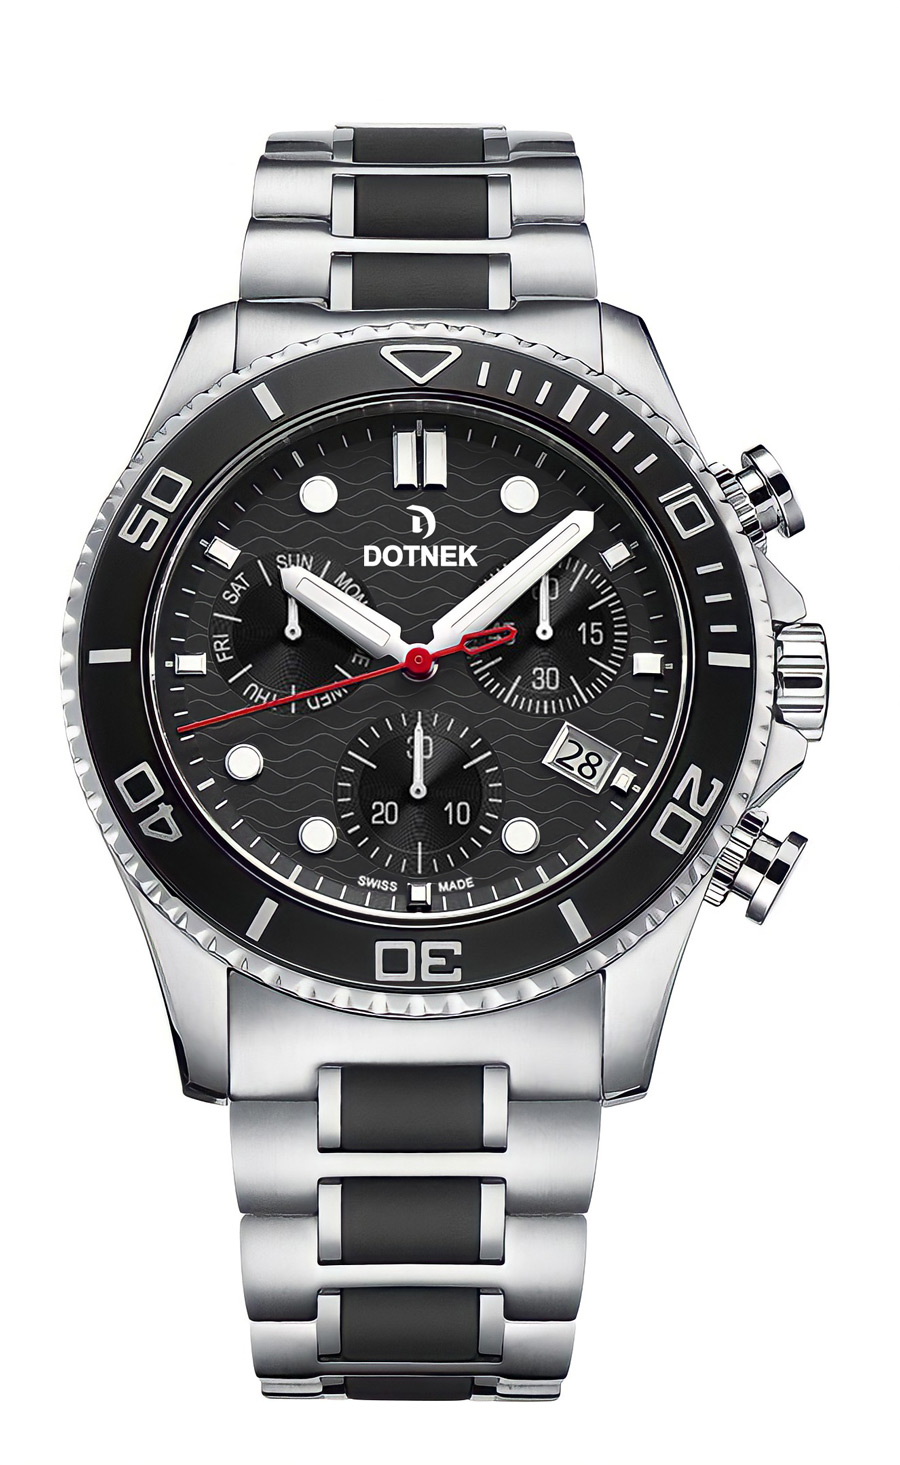 DOTNEK Drift-Master Swiss-Made Chronograph Watch for Men, Stainless Steel Black dial Luxury Watch with Stainless Steel Bracelet